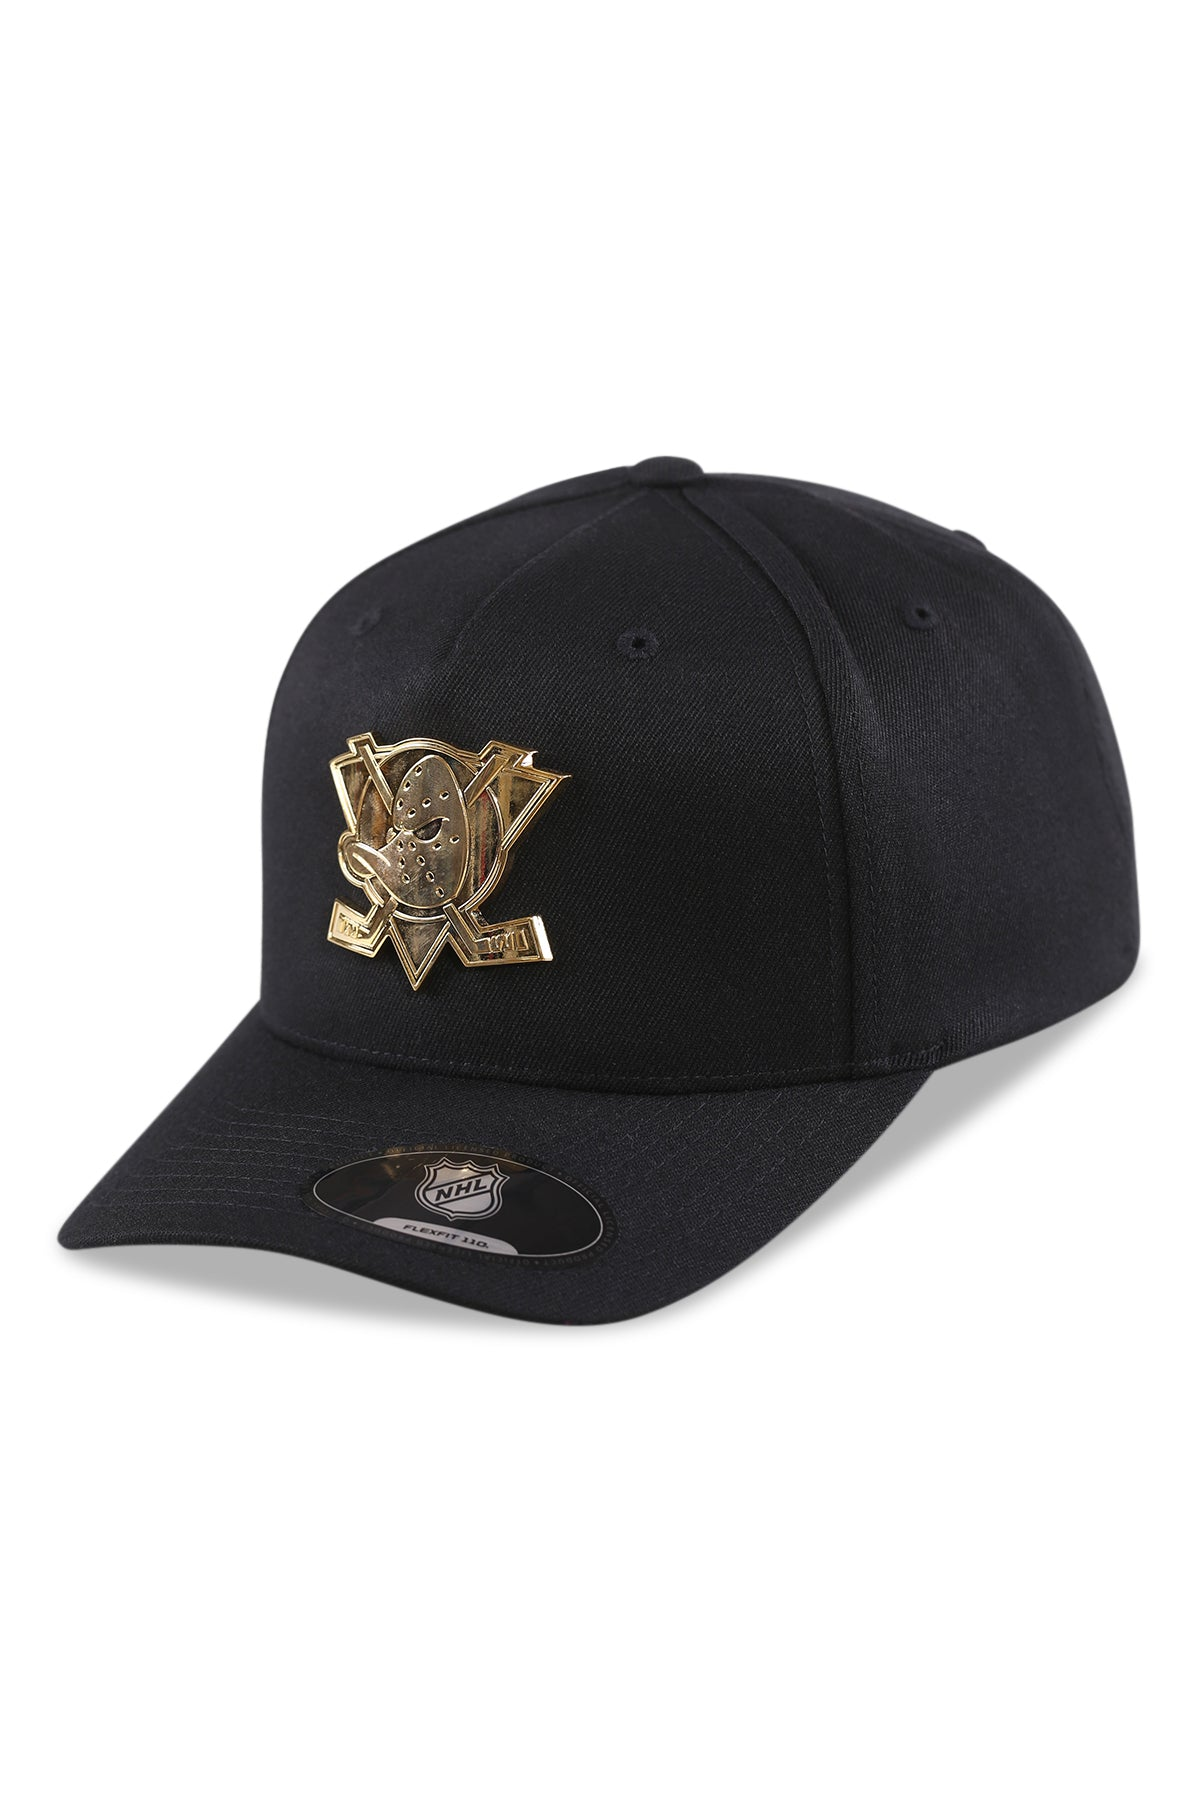 Majestic Ducks NHL Gold Enamel Crest Black Snapback